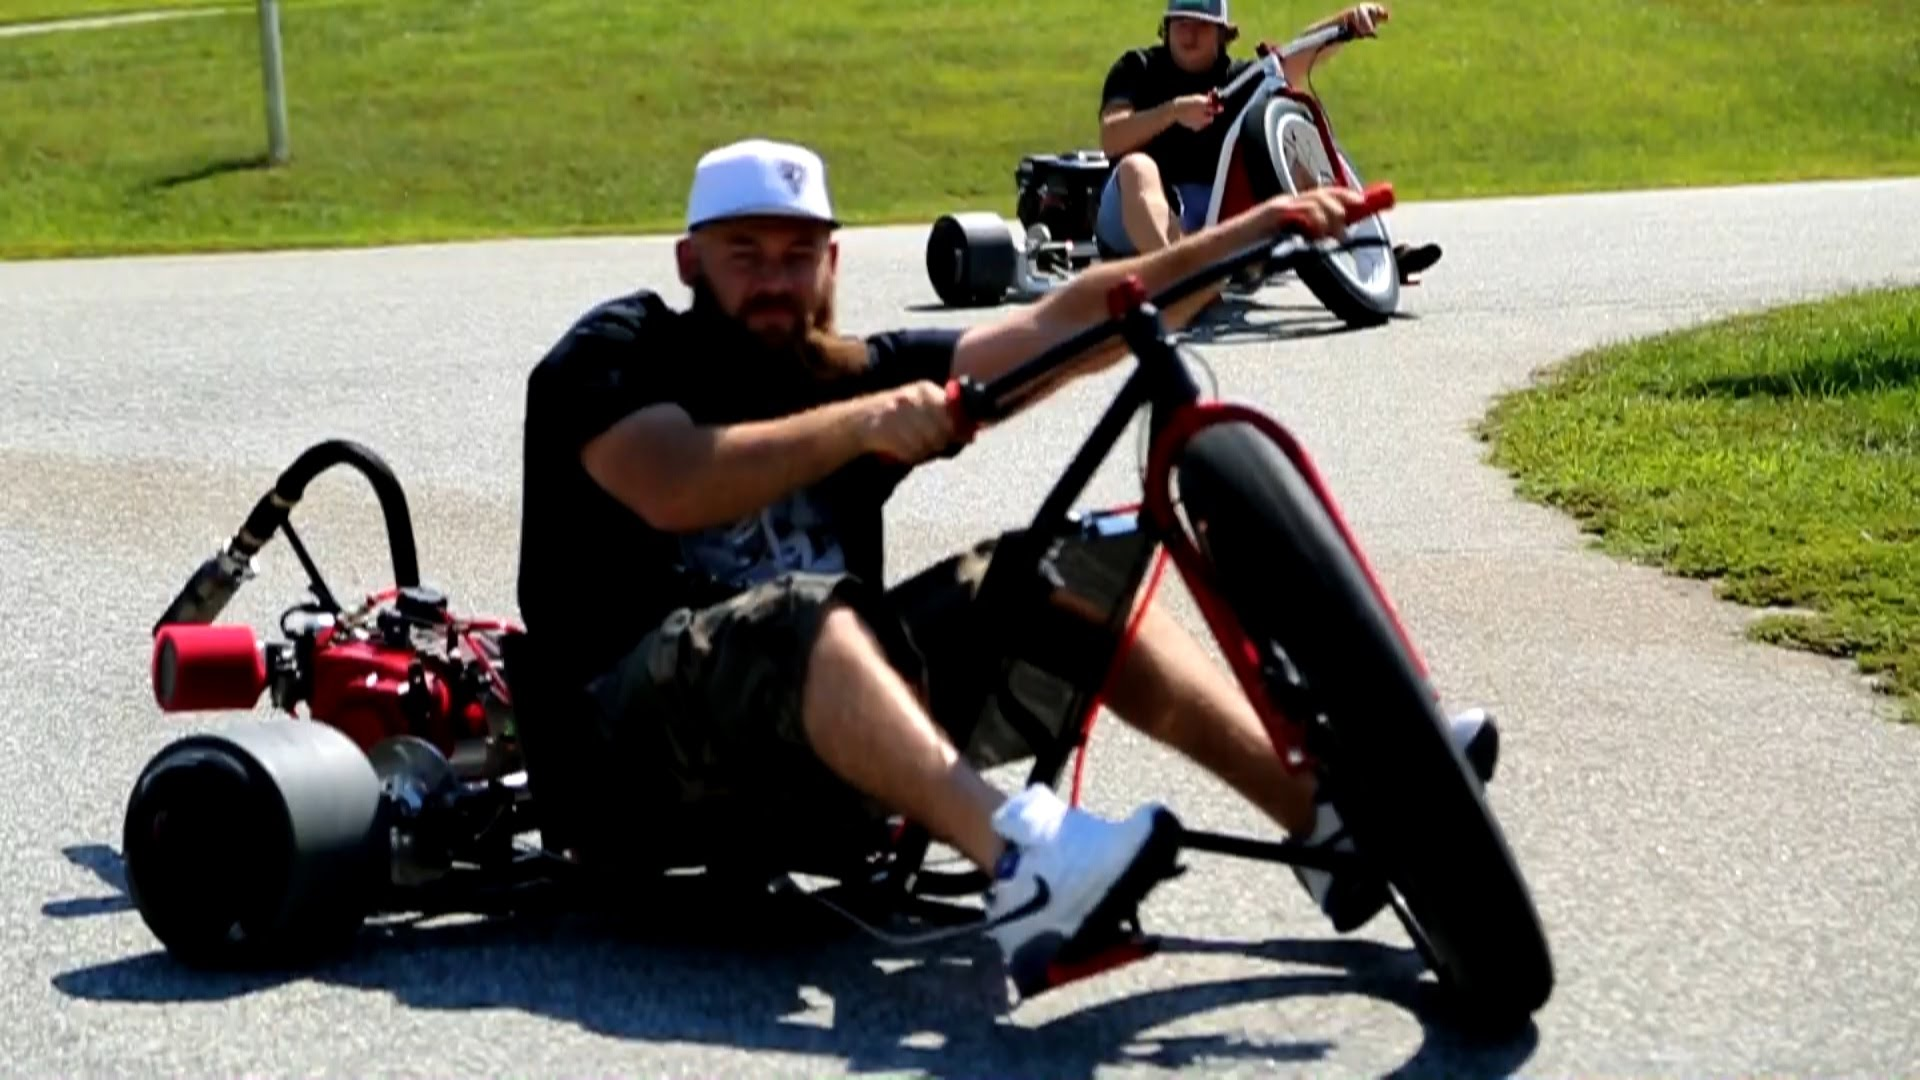 motorized drift trike video auf. Black Bedroom Furniture Sets. Home Design Ideas